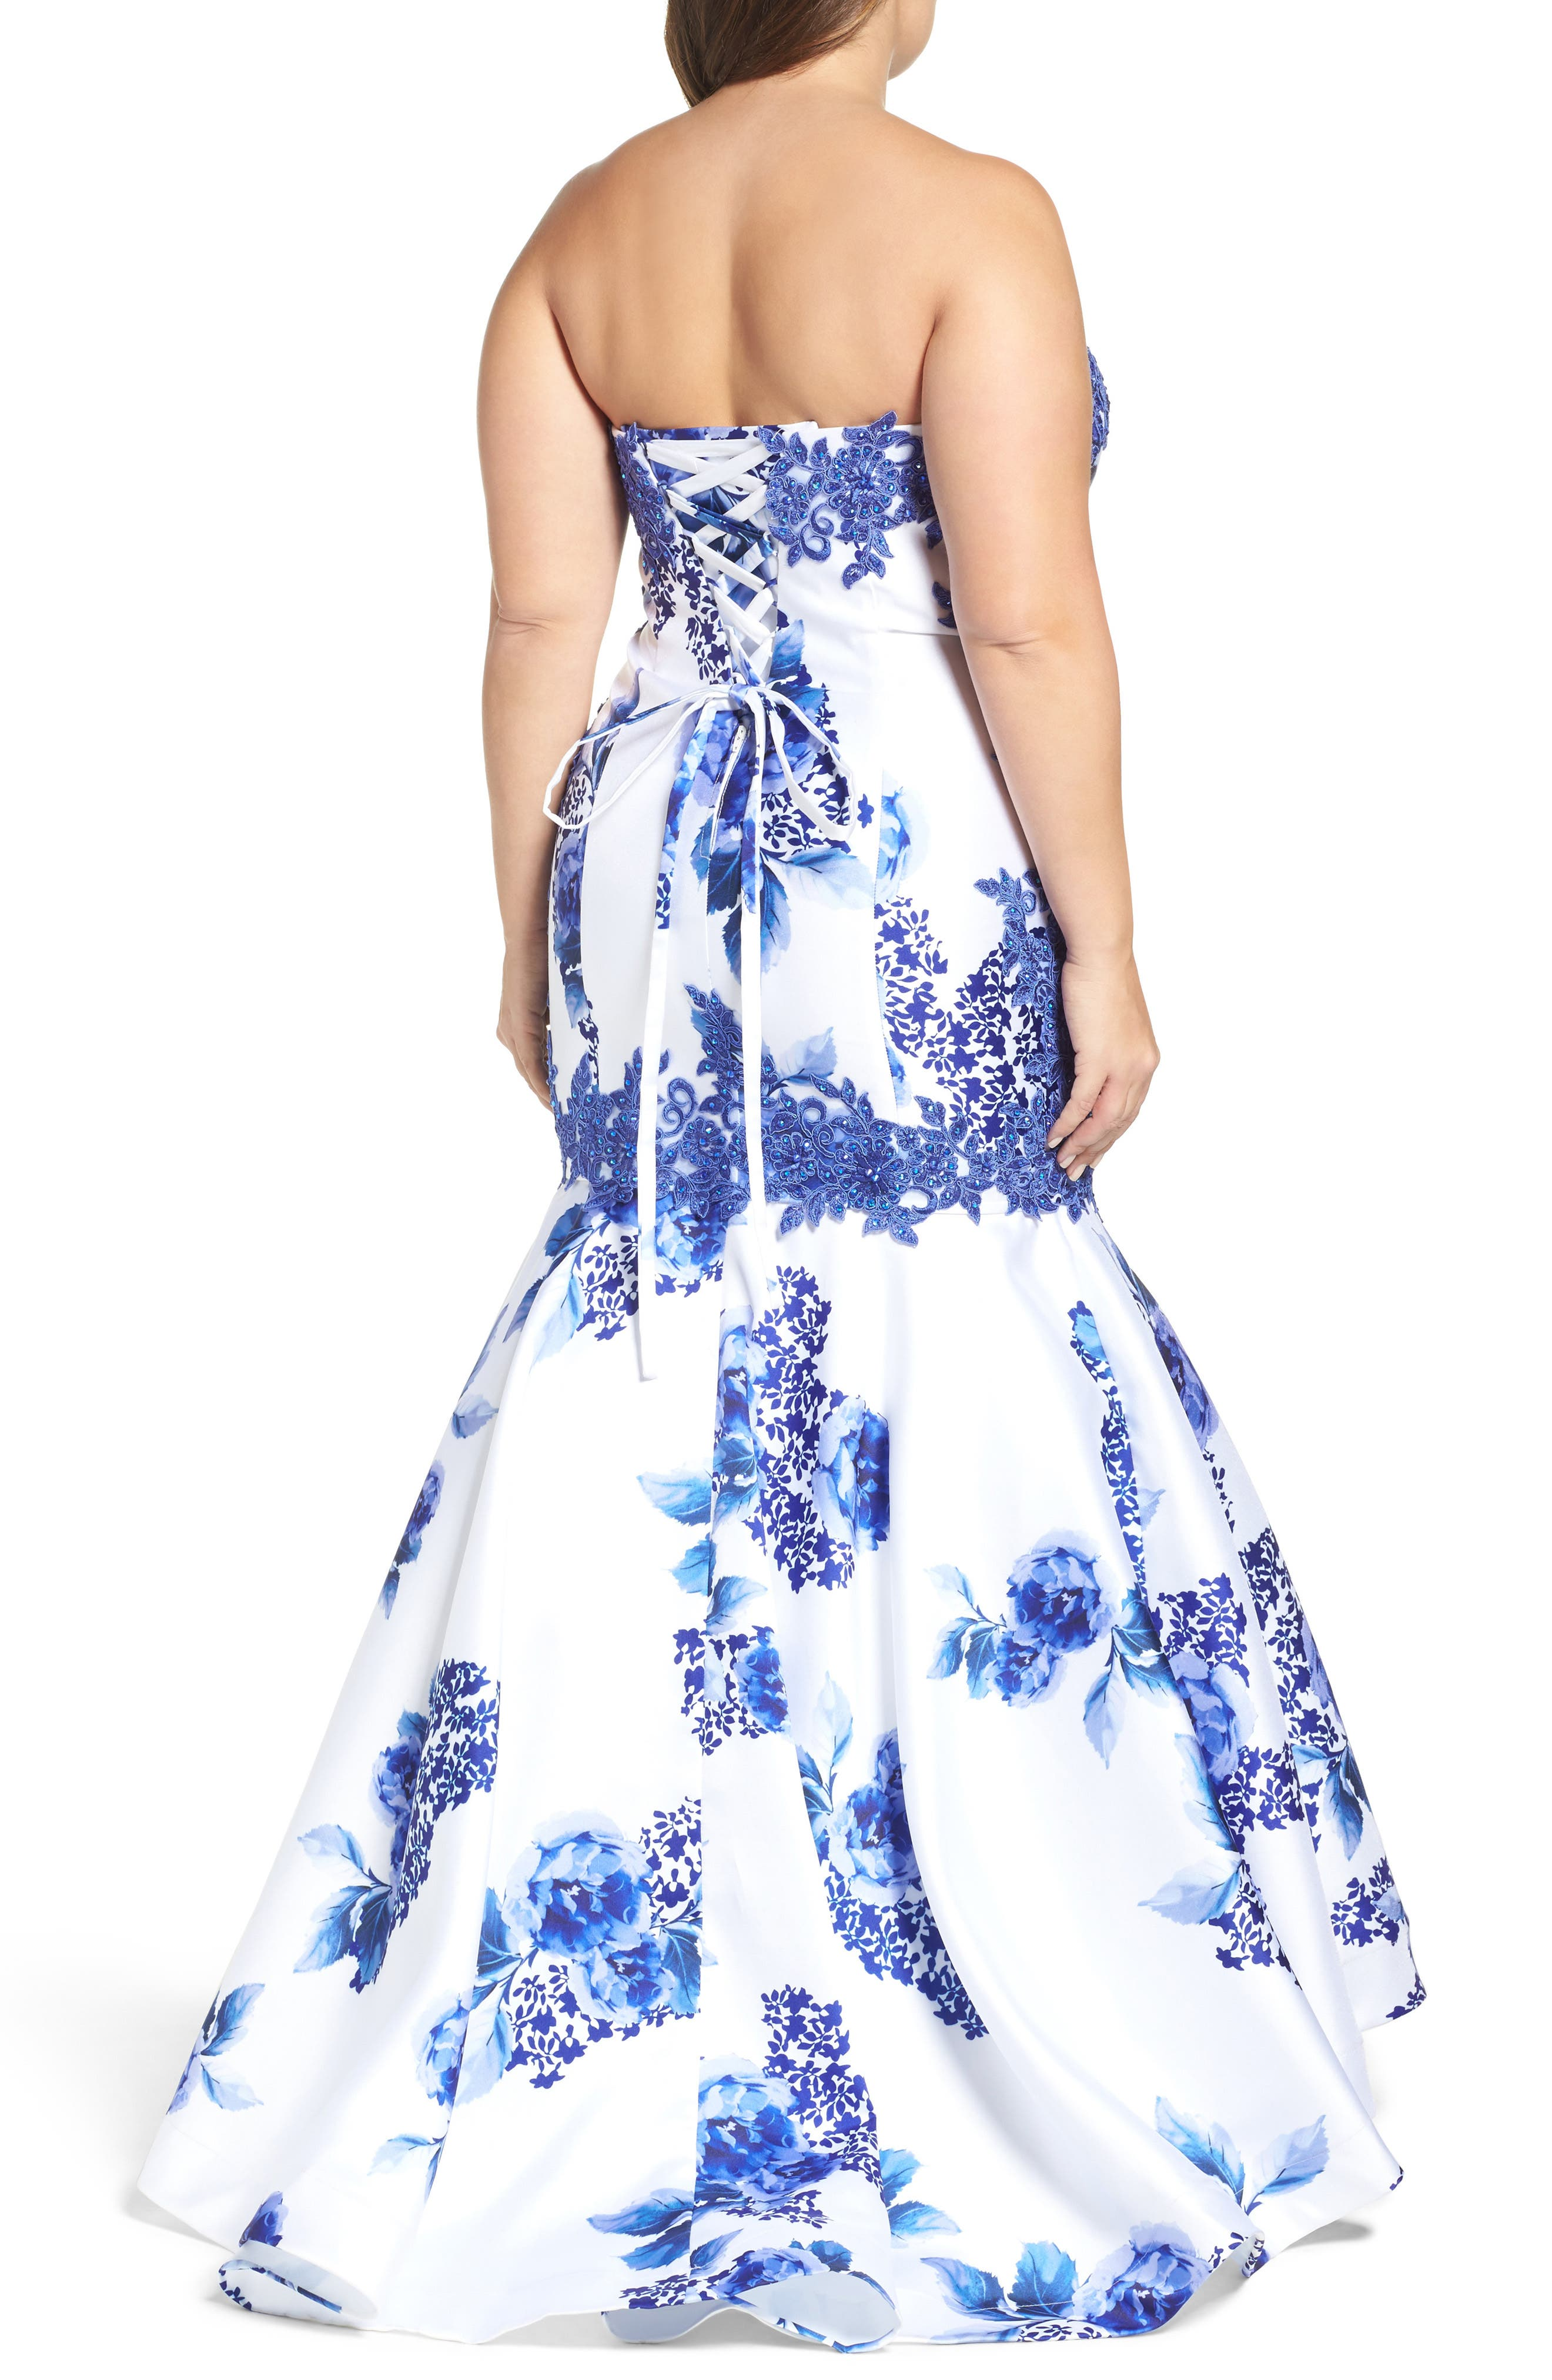 Embellished Strapless Zip Off Mermaid Gown,                             Alternate thumbnail 2, color,                             BLUE FLORAL